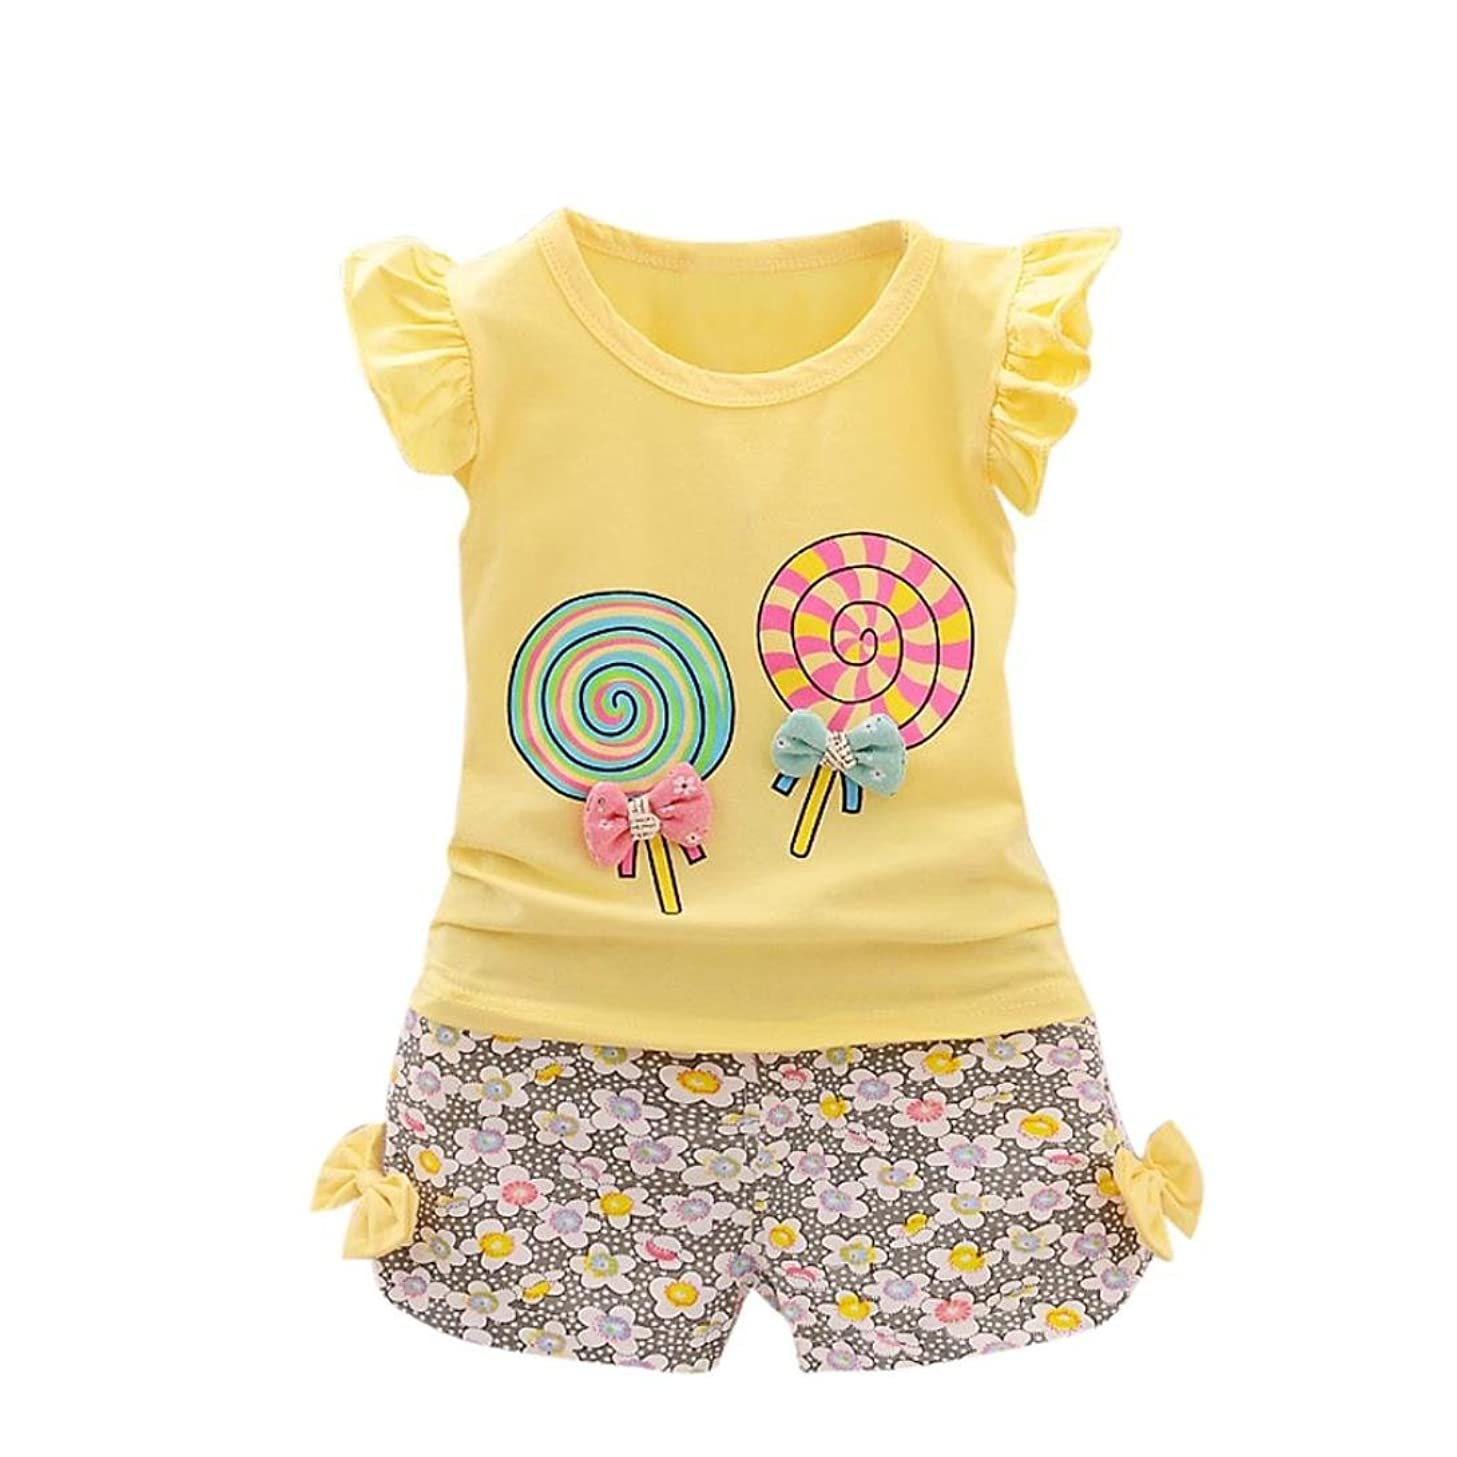 FAPIZI 2PCS Toddler Baby Girls Kids Lolly T-Shirt Tops+Short Pants Clothes Set Outfits